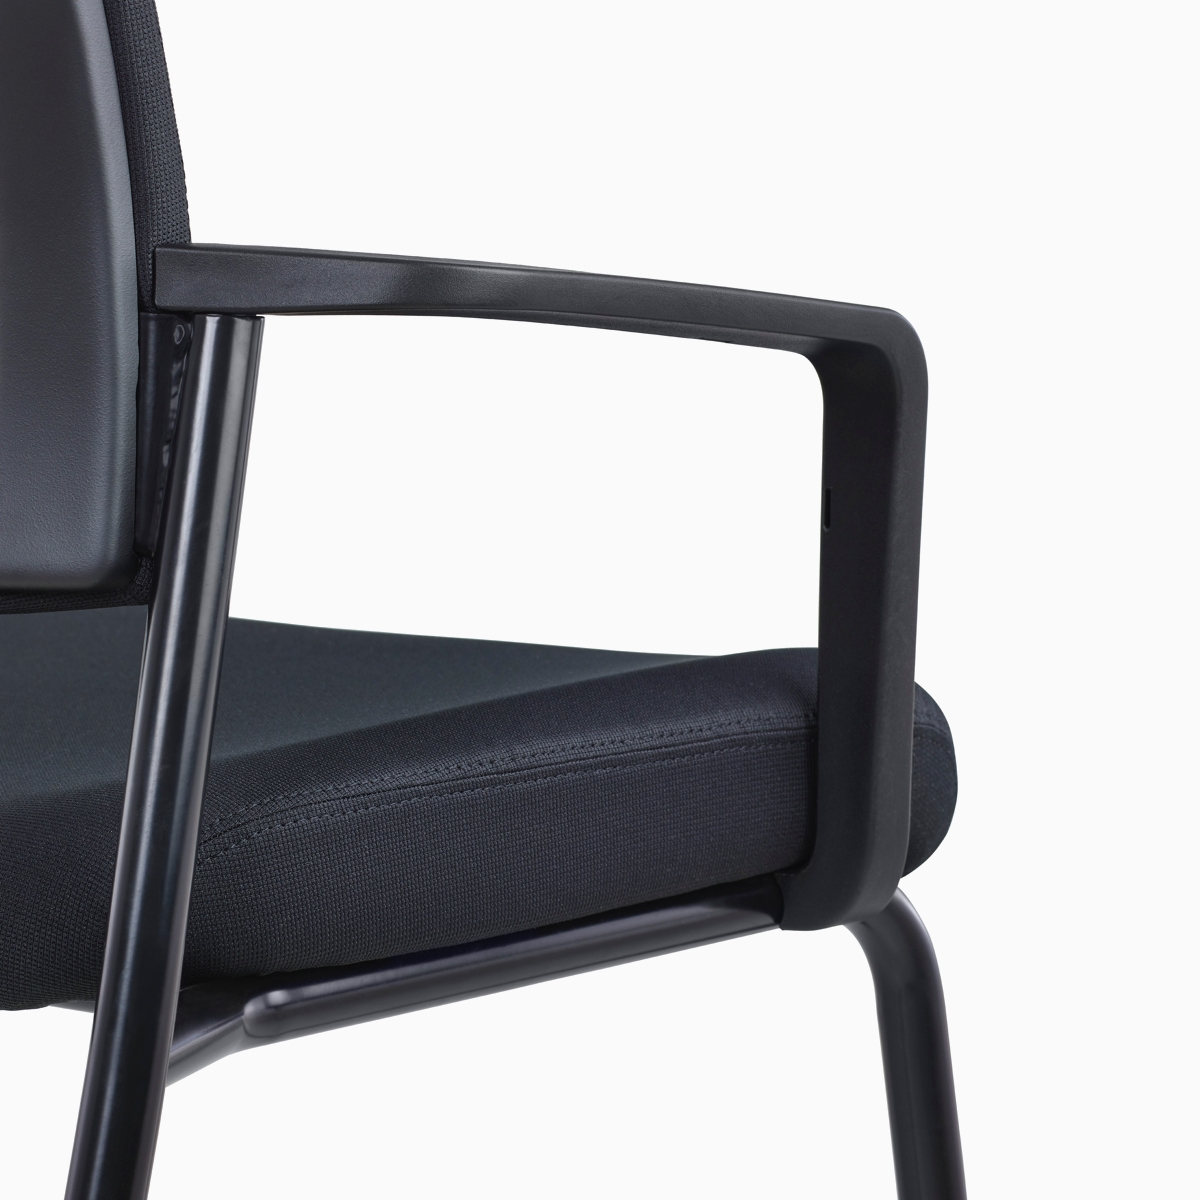 A close-up view of a Verus Plus Chair from behind.